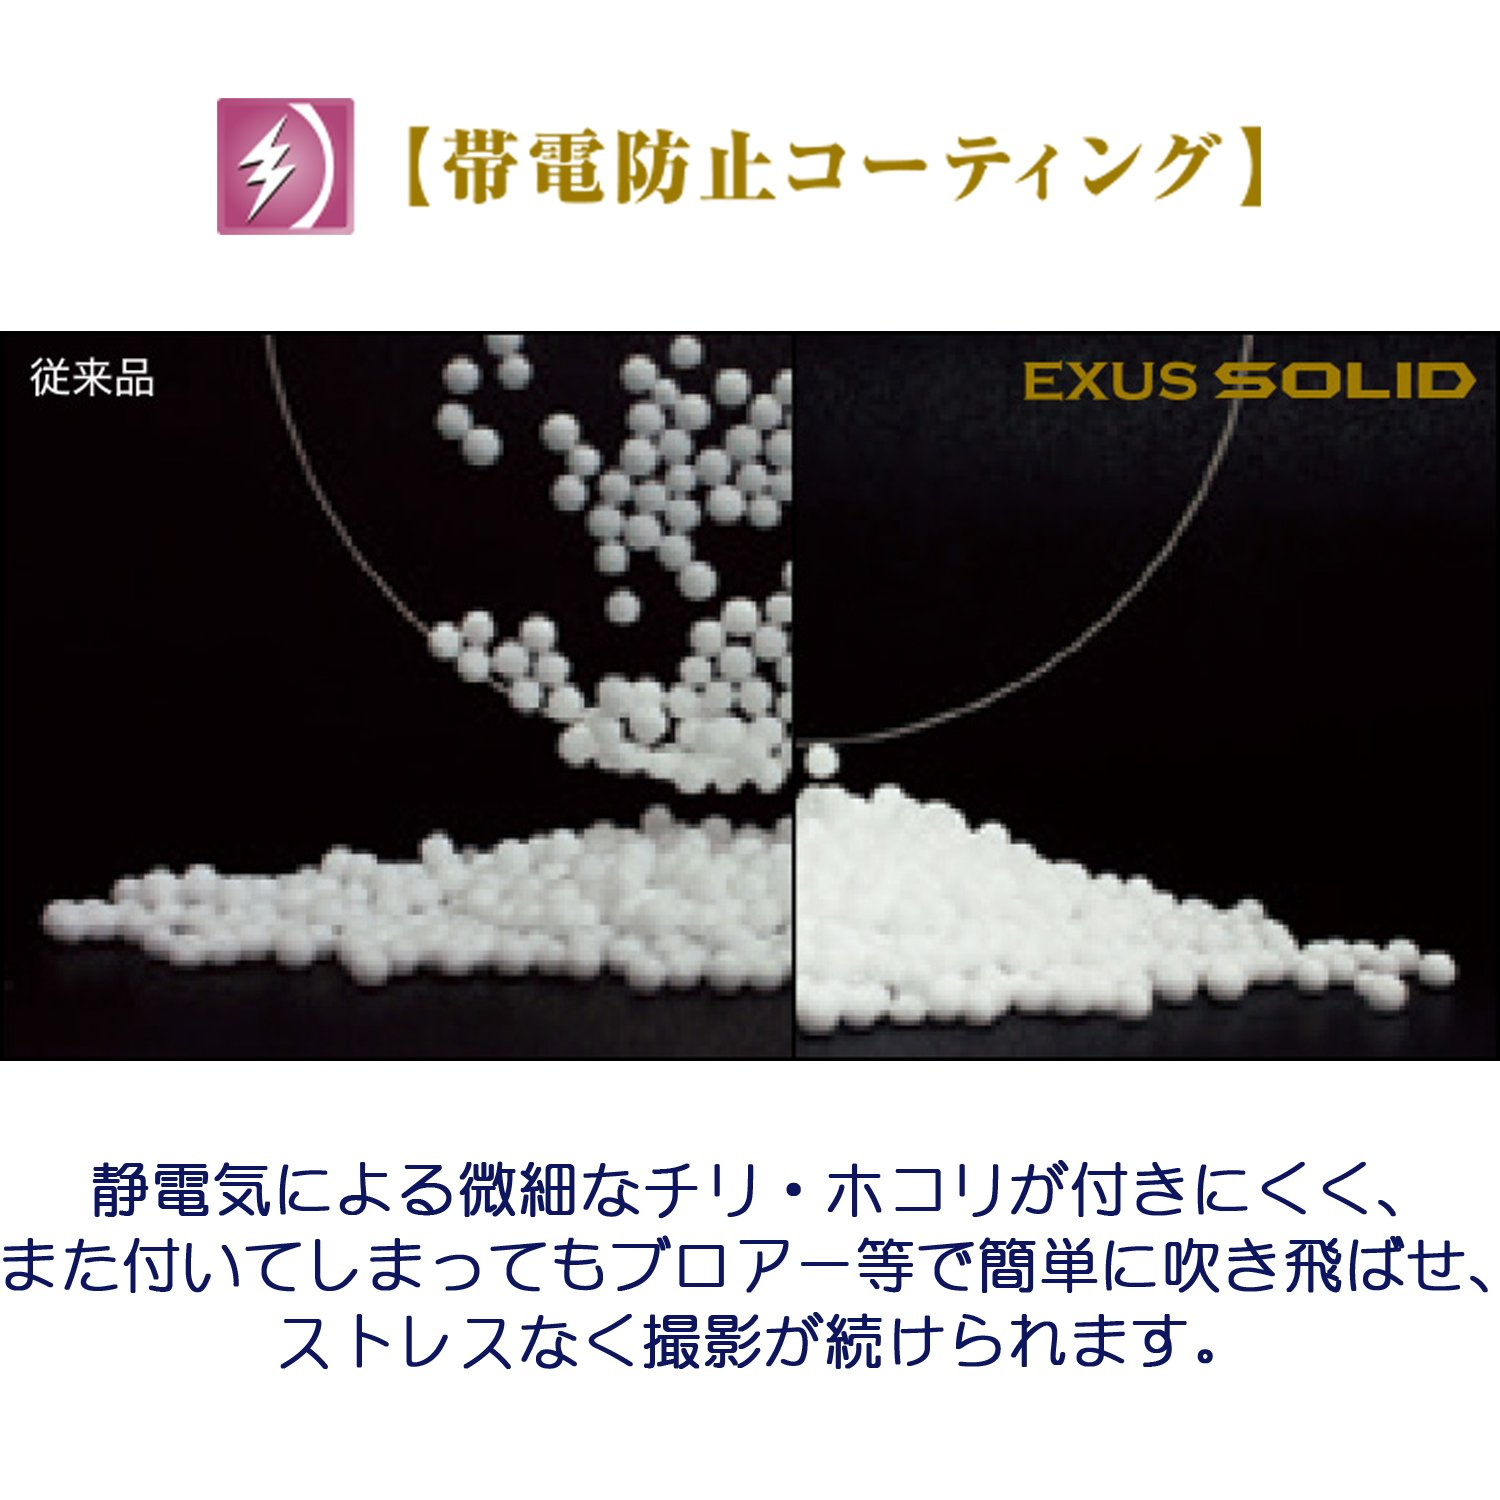 Marumi EXUS SOLID 82mm Lens Protect Filter Anti-Static Hard Coated 82 Made in Japan ''7 X Stronger'' by Marumi (Image #5)